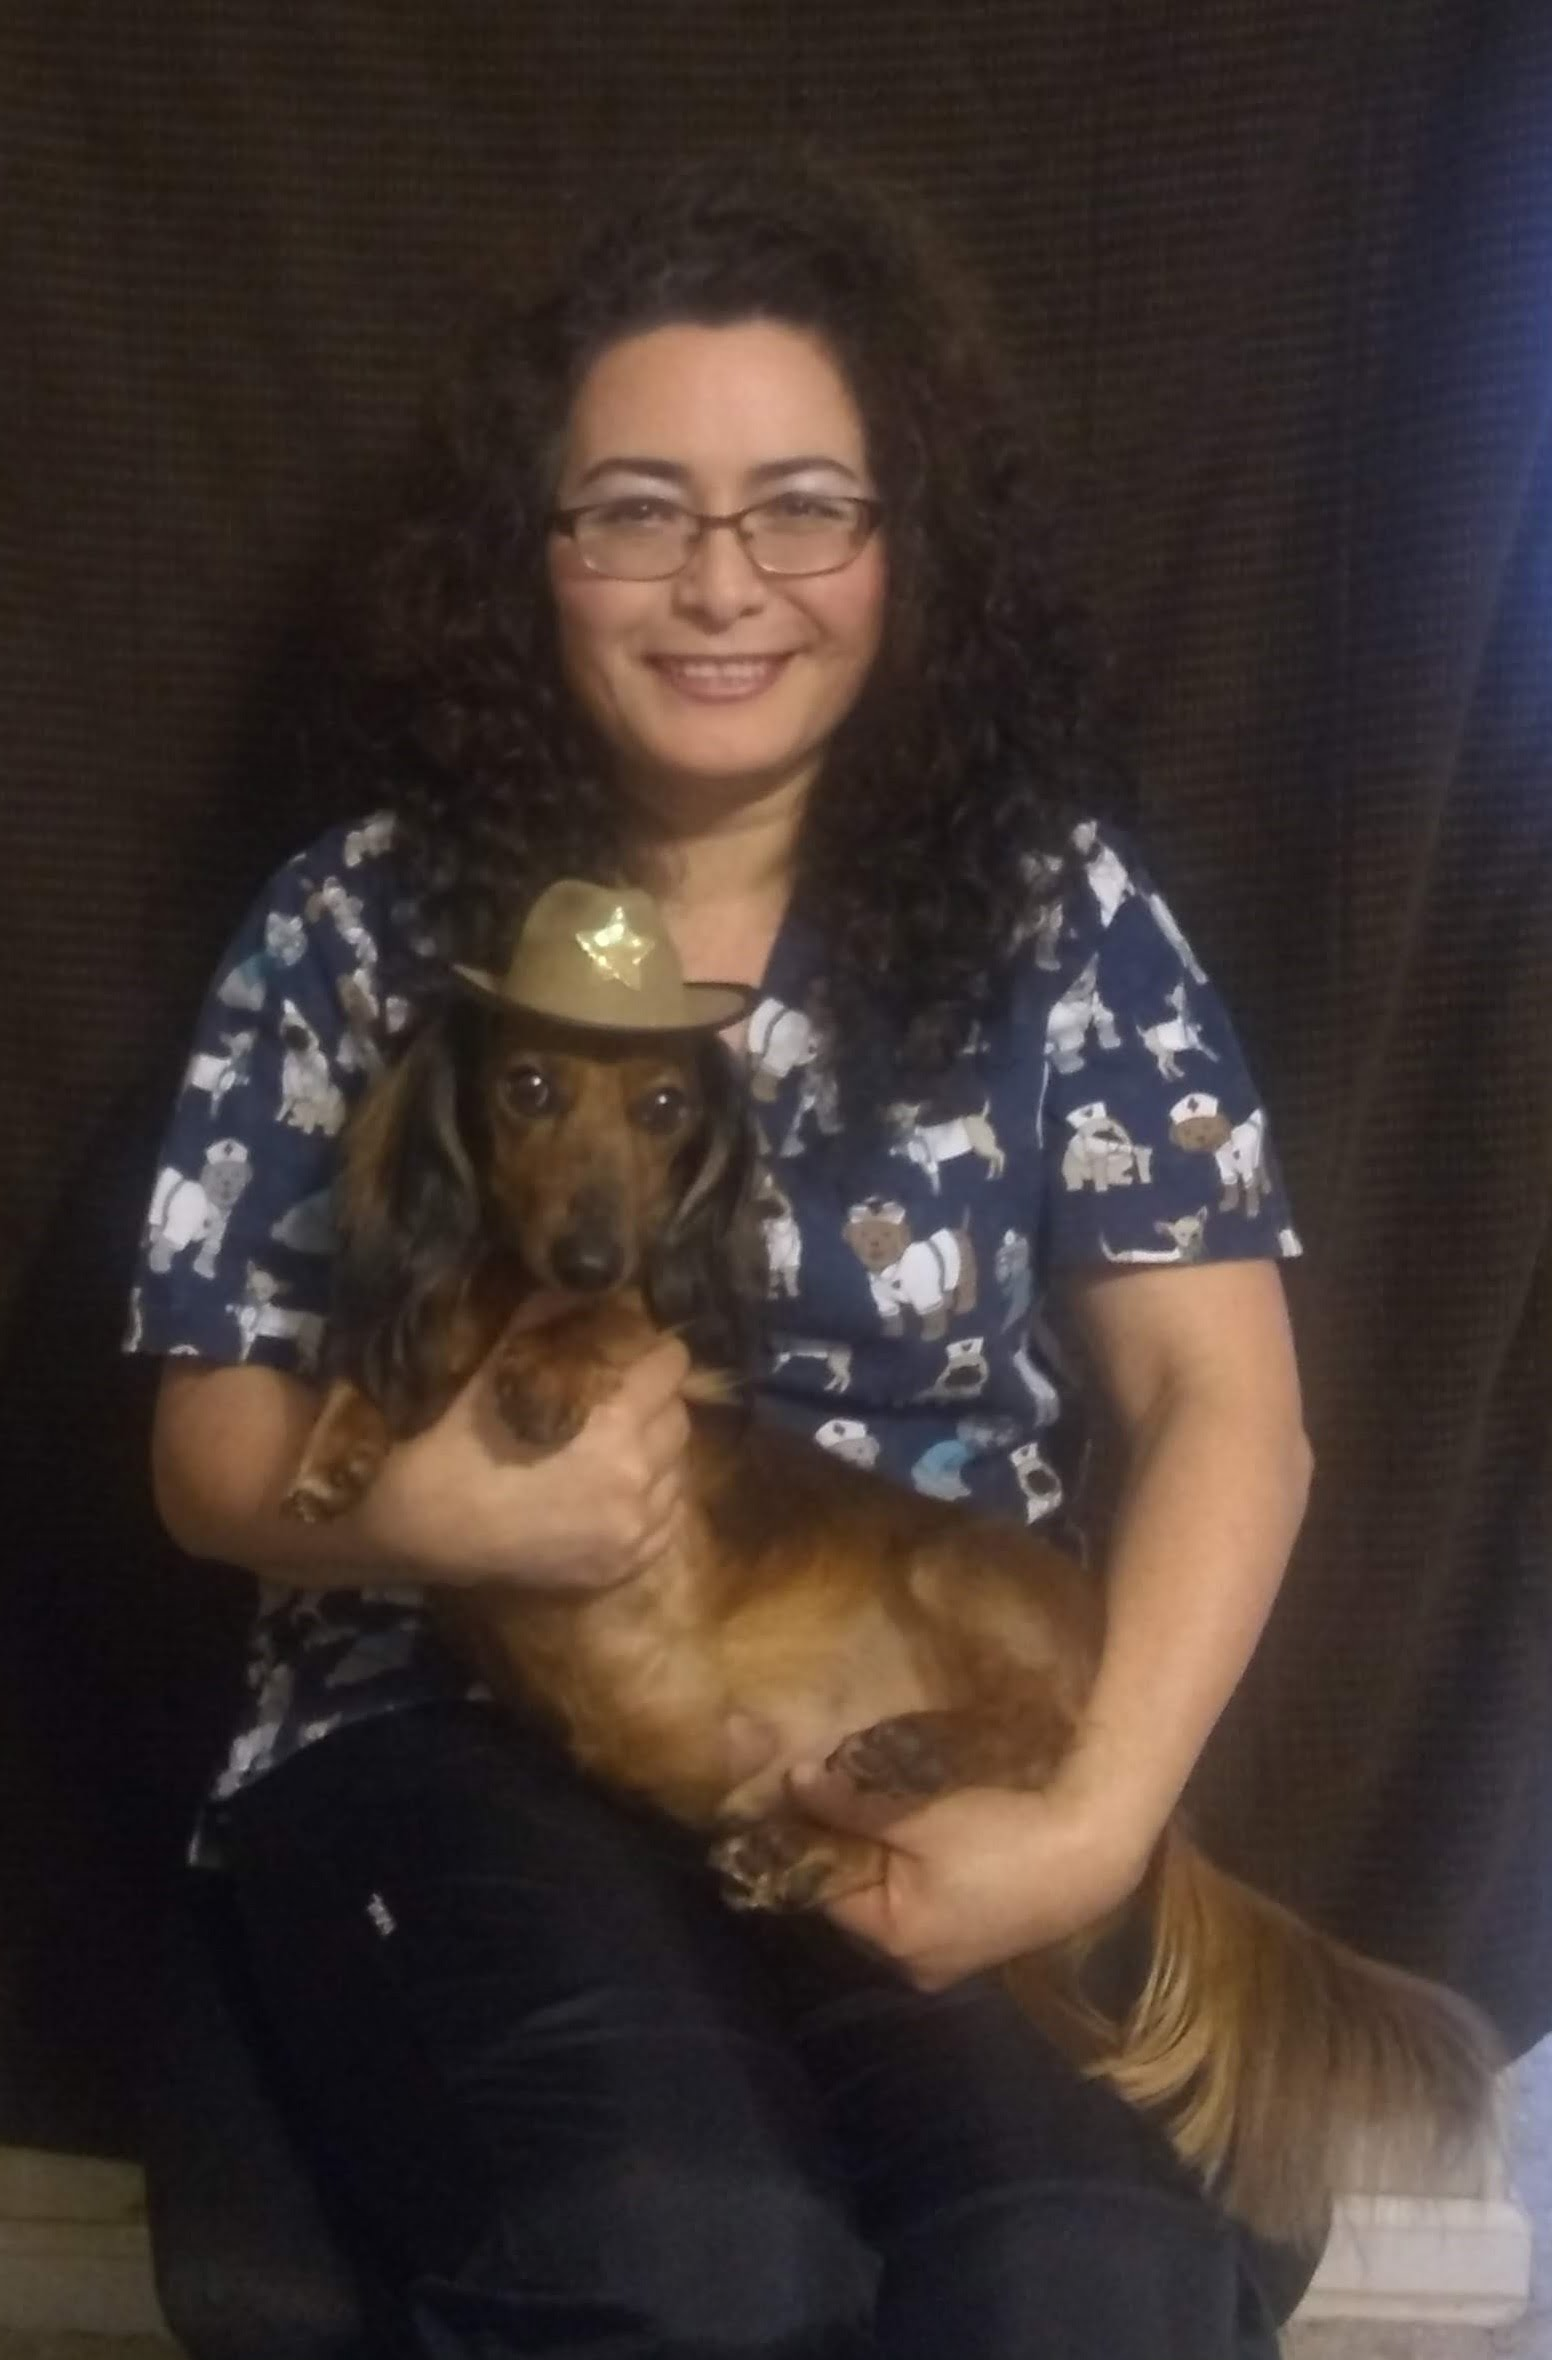 Team member Leticia holding a brown dachshund wearing a hat